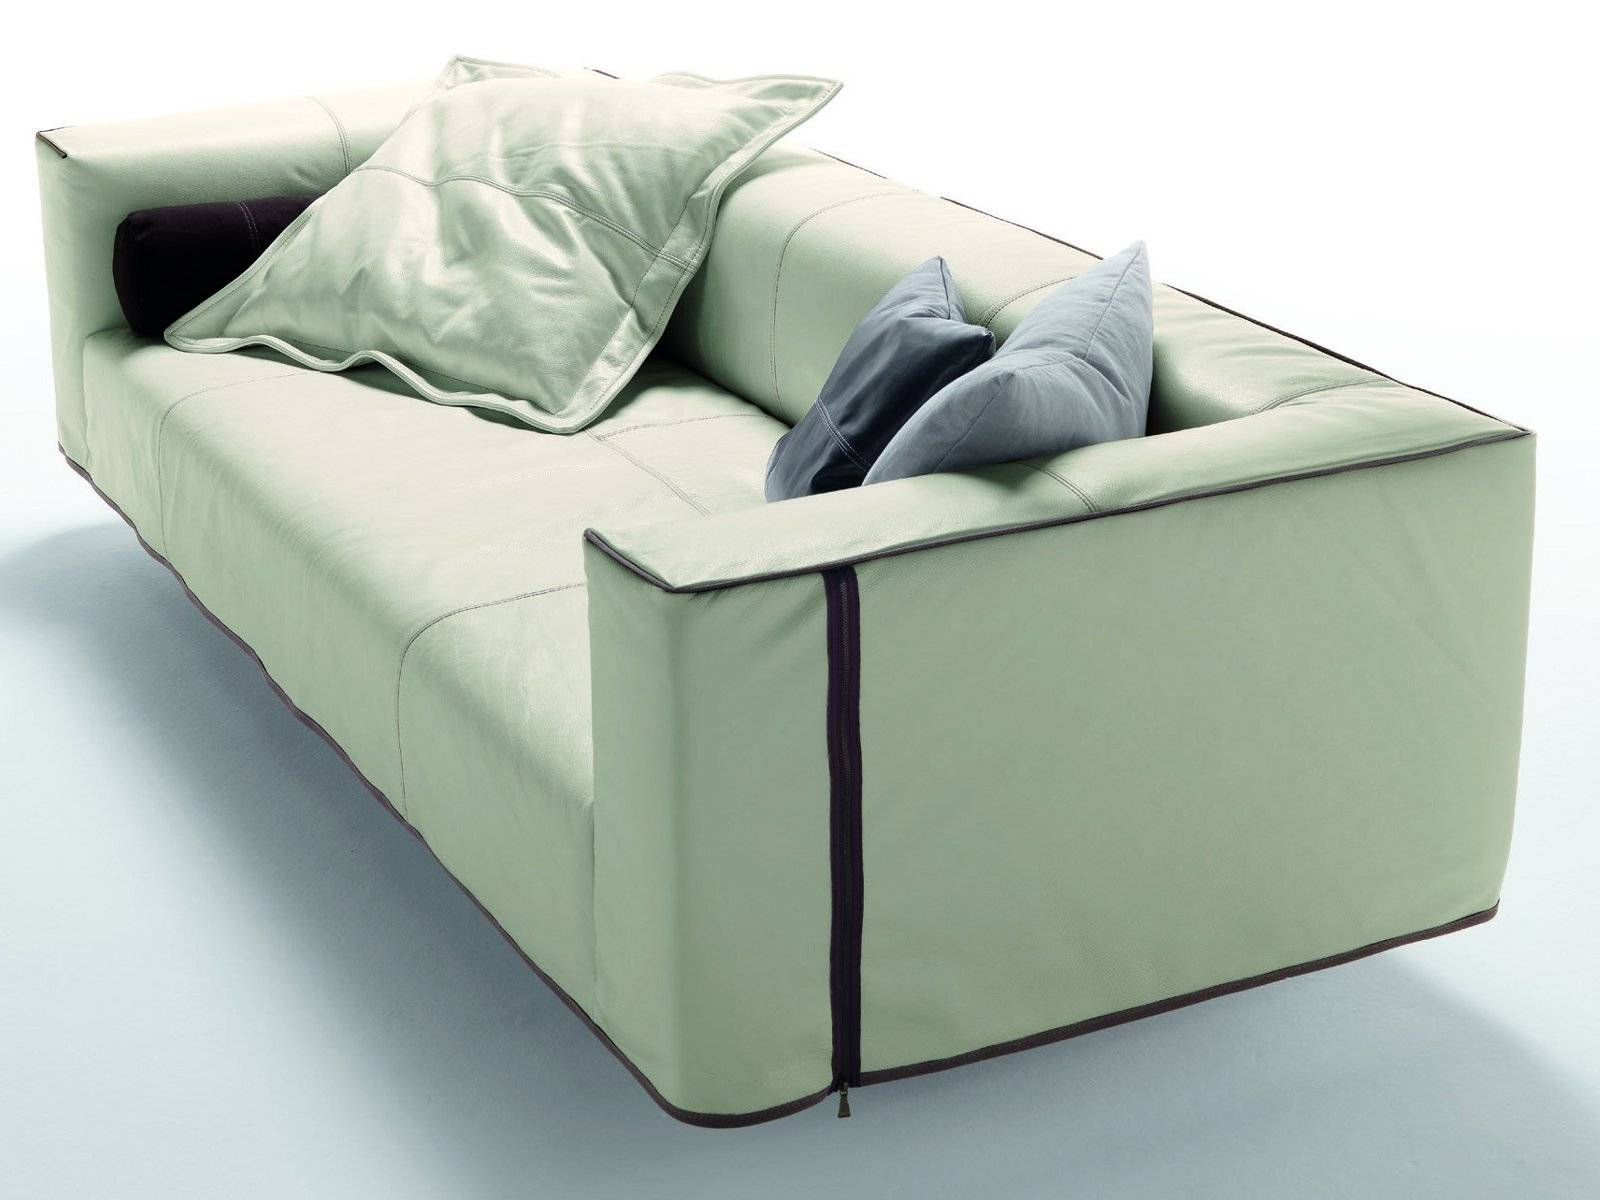 Sofa With Removable Cover Zerocento Zipdésirée Divani Design inside Sofa With Removable Cover (Image 24 of 30)